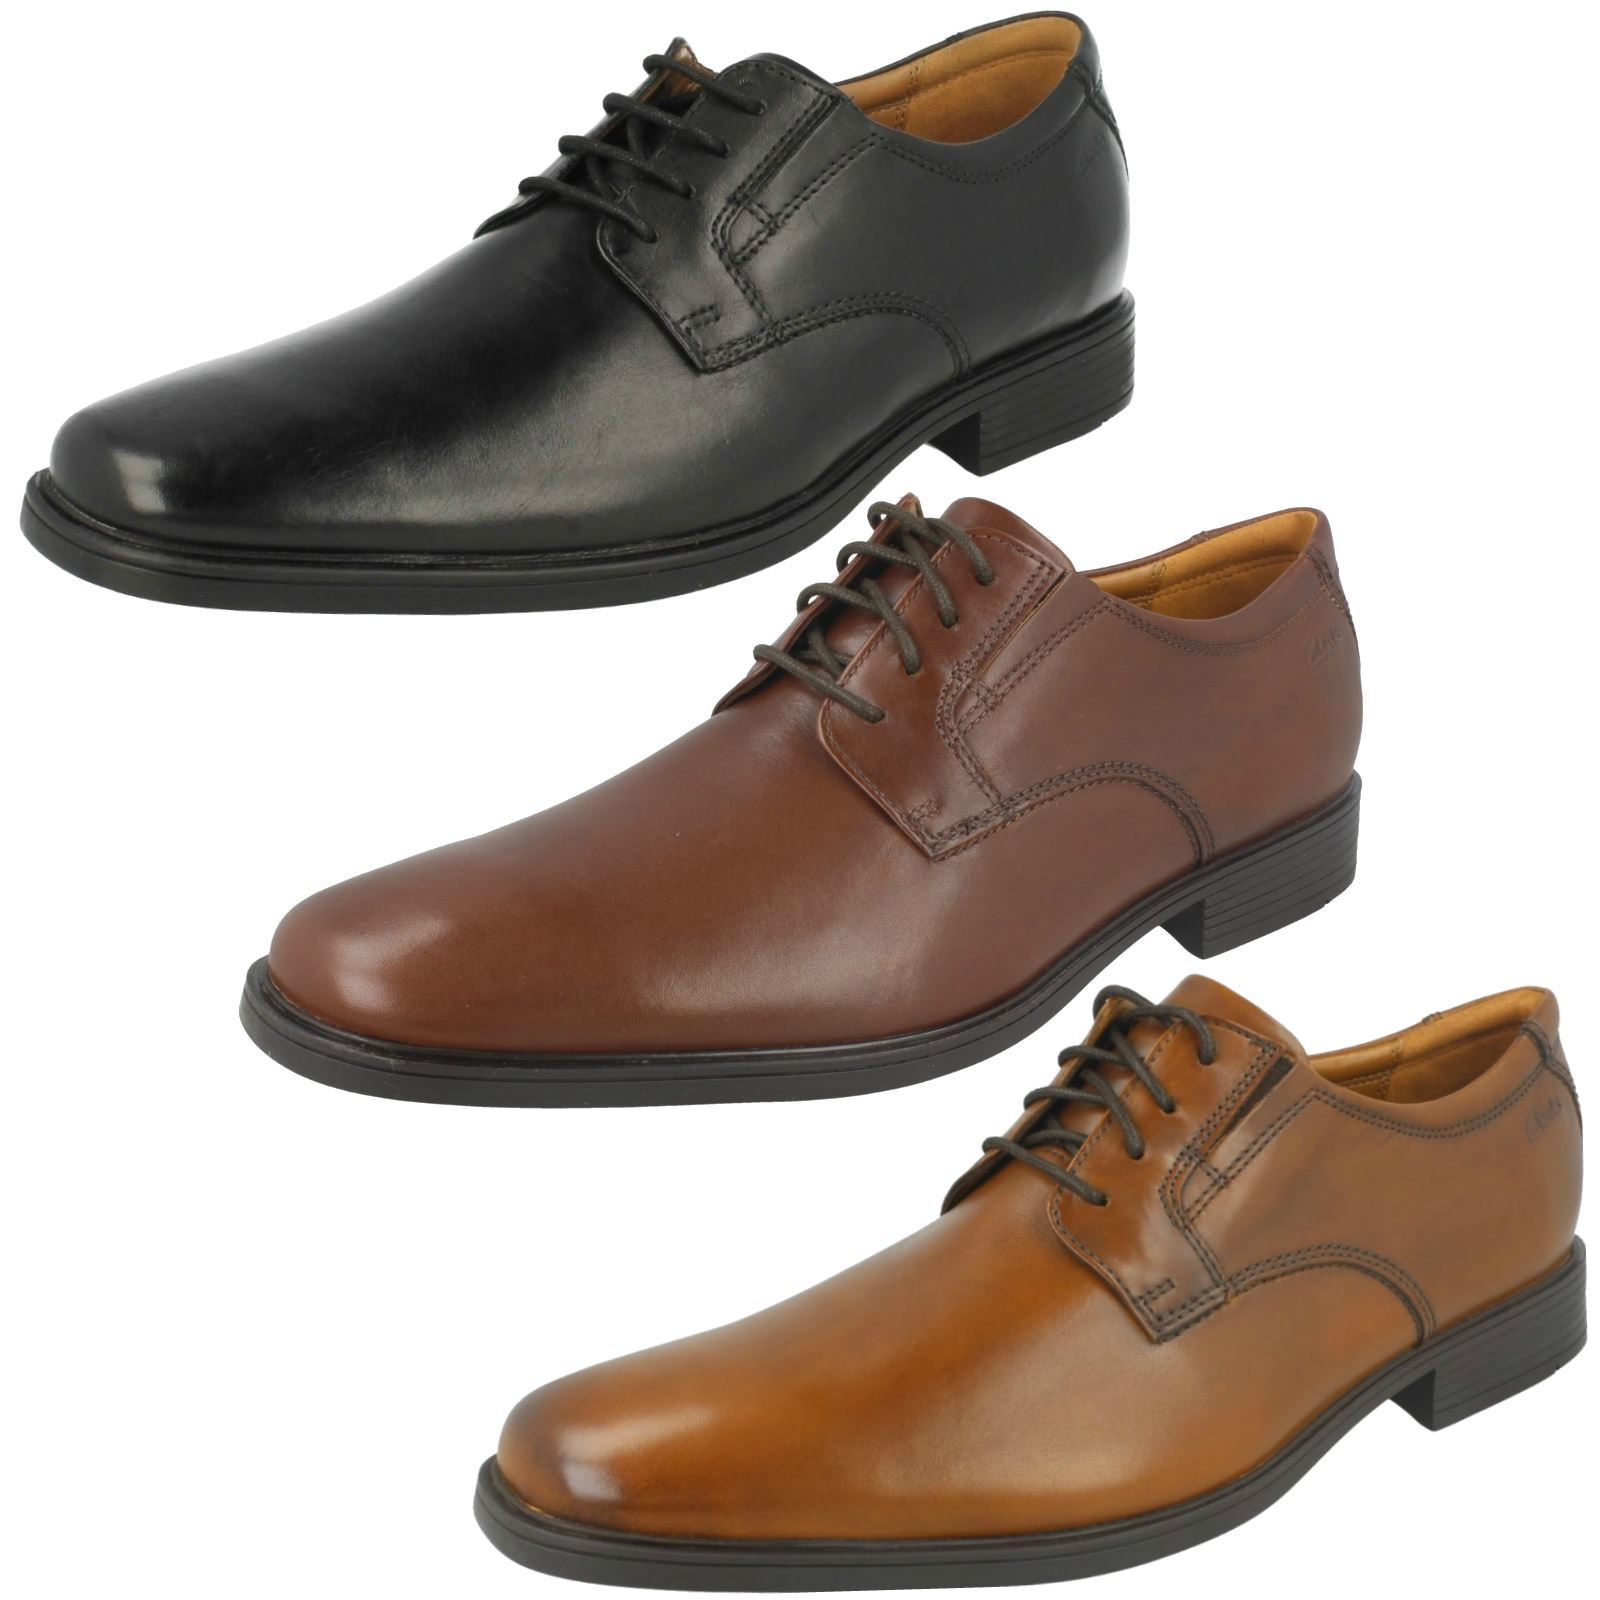 Mens Clarks Formal Rounded Toe Lace Up Smooth Leather shoes Tilden Plain